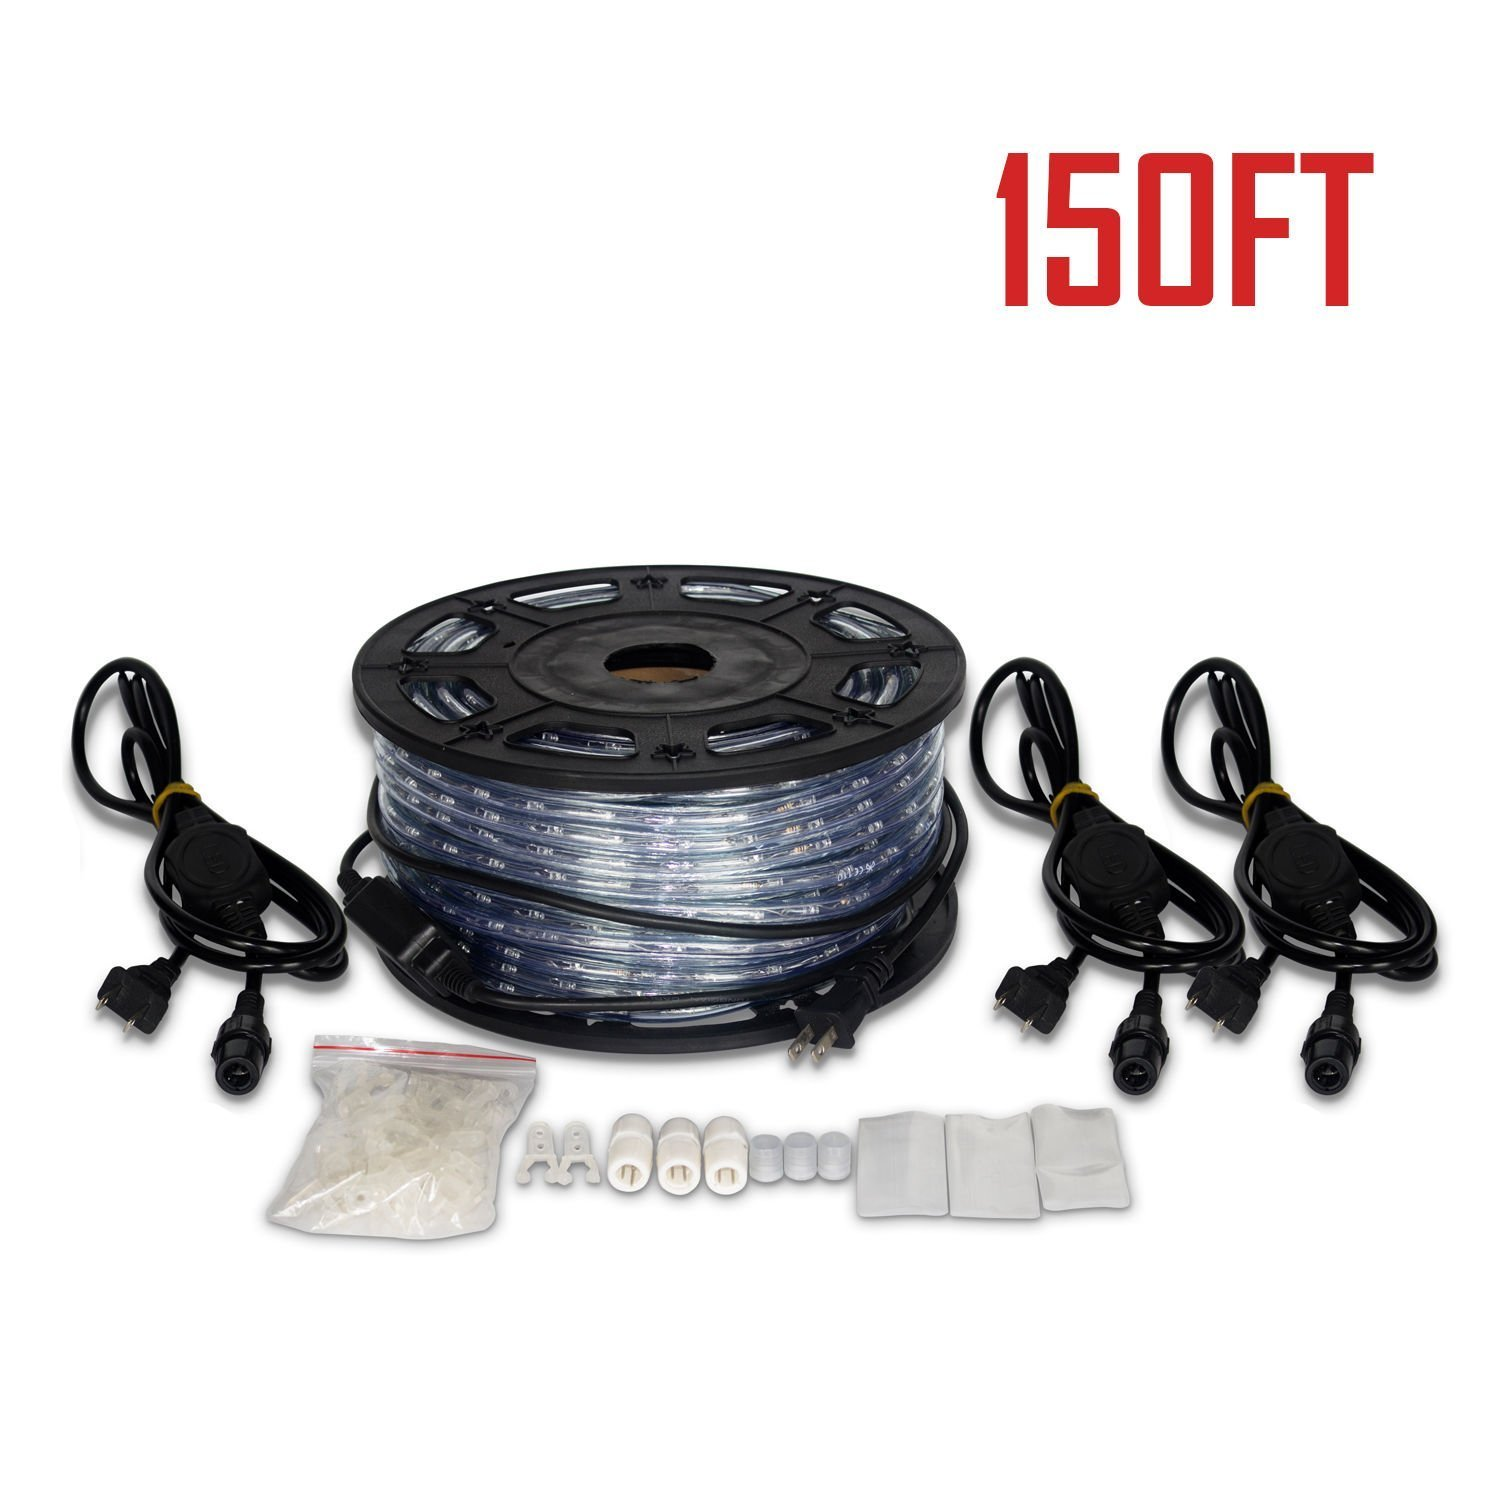 Ainfox LED Rope Light, 150Ft 1620 LEDs Indoor Outdoor Waterproof LED Strip Lights Decorative Lighting (150FT Cold White) by Ainfox (Image #7)